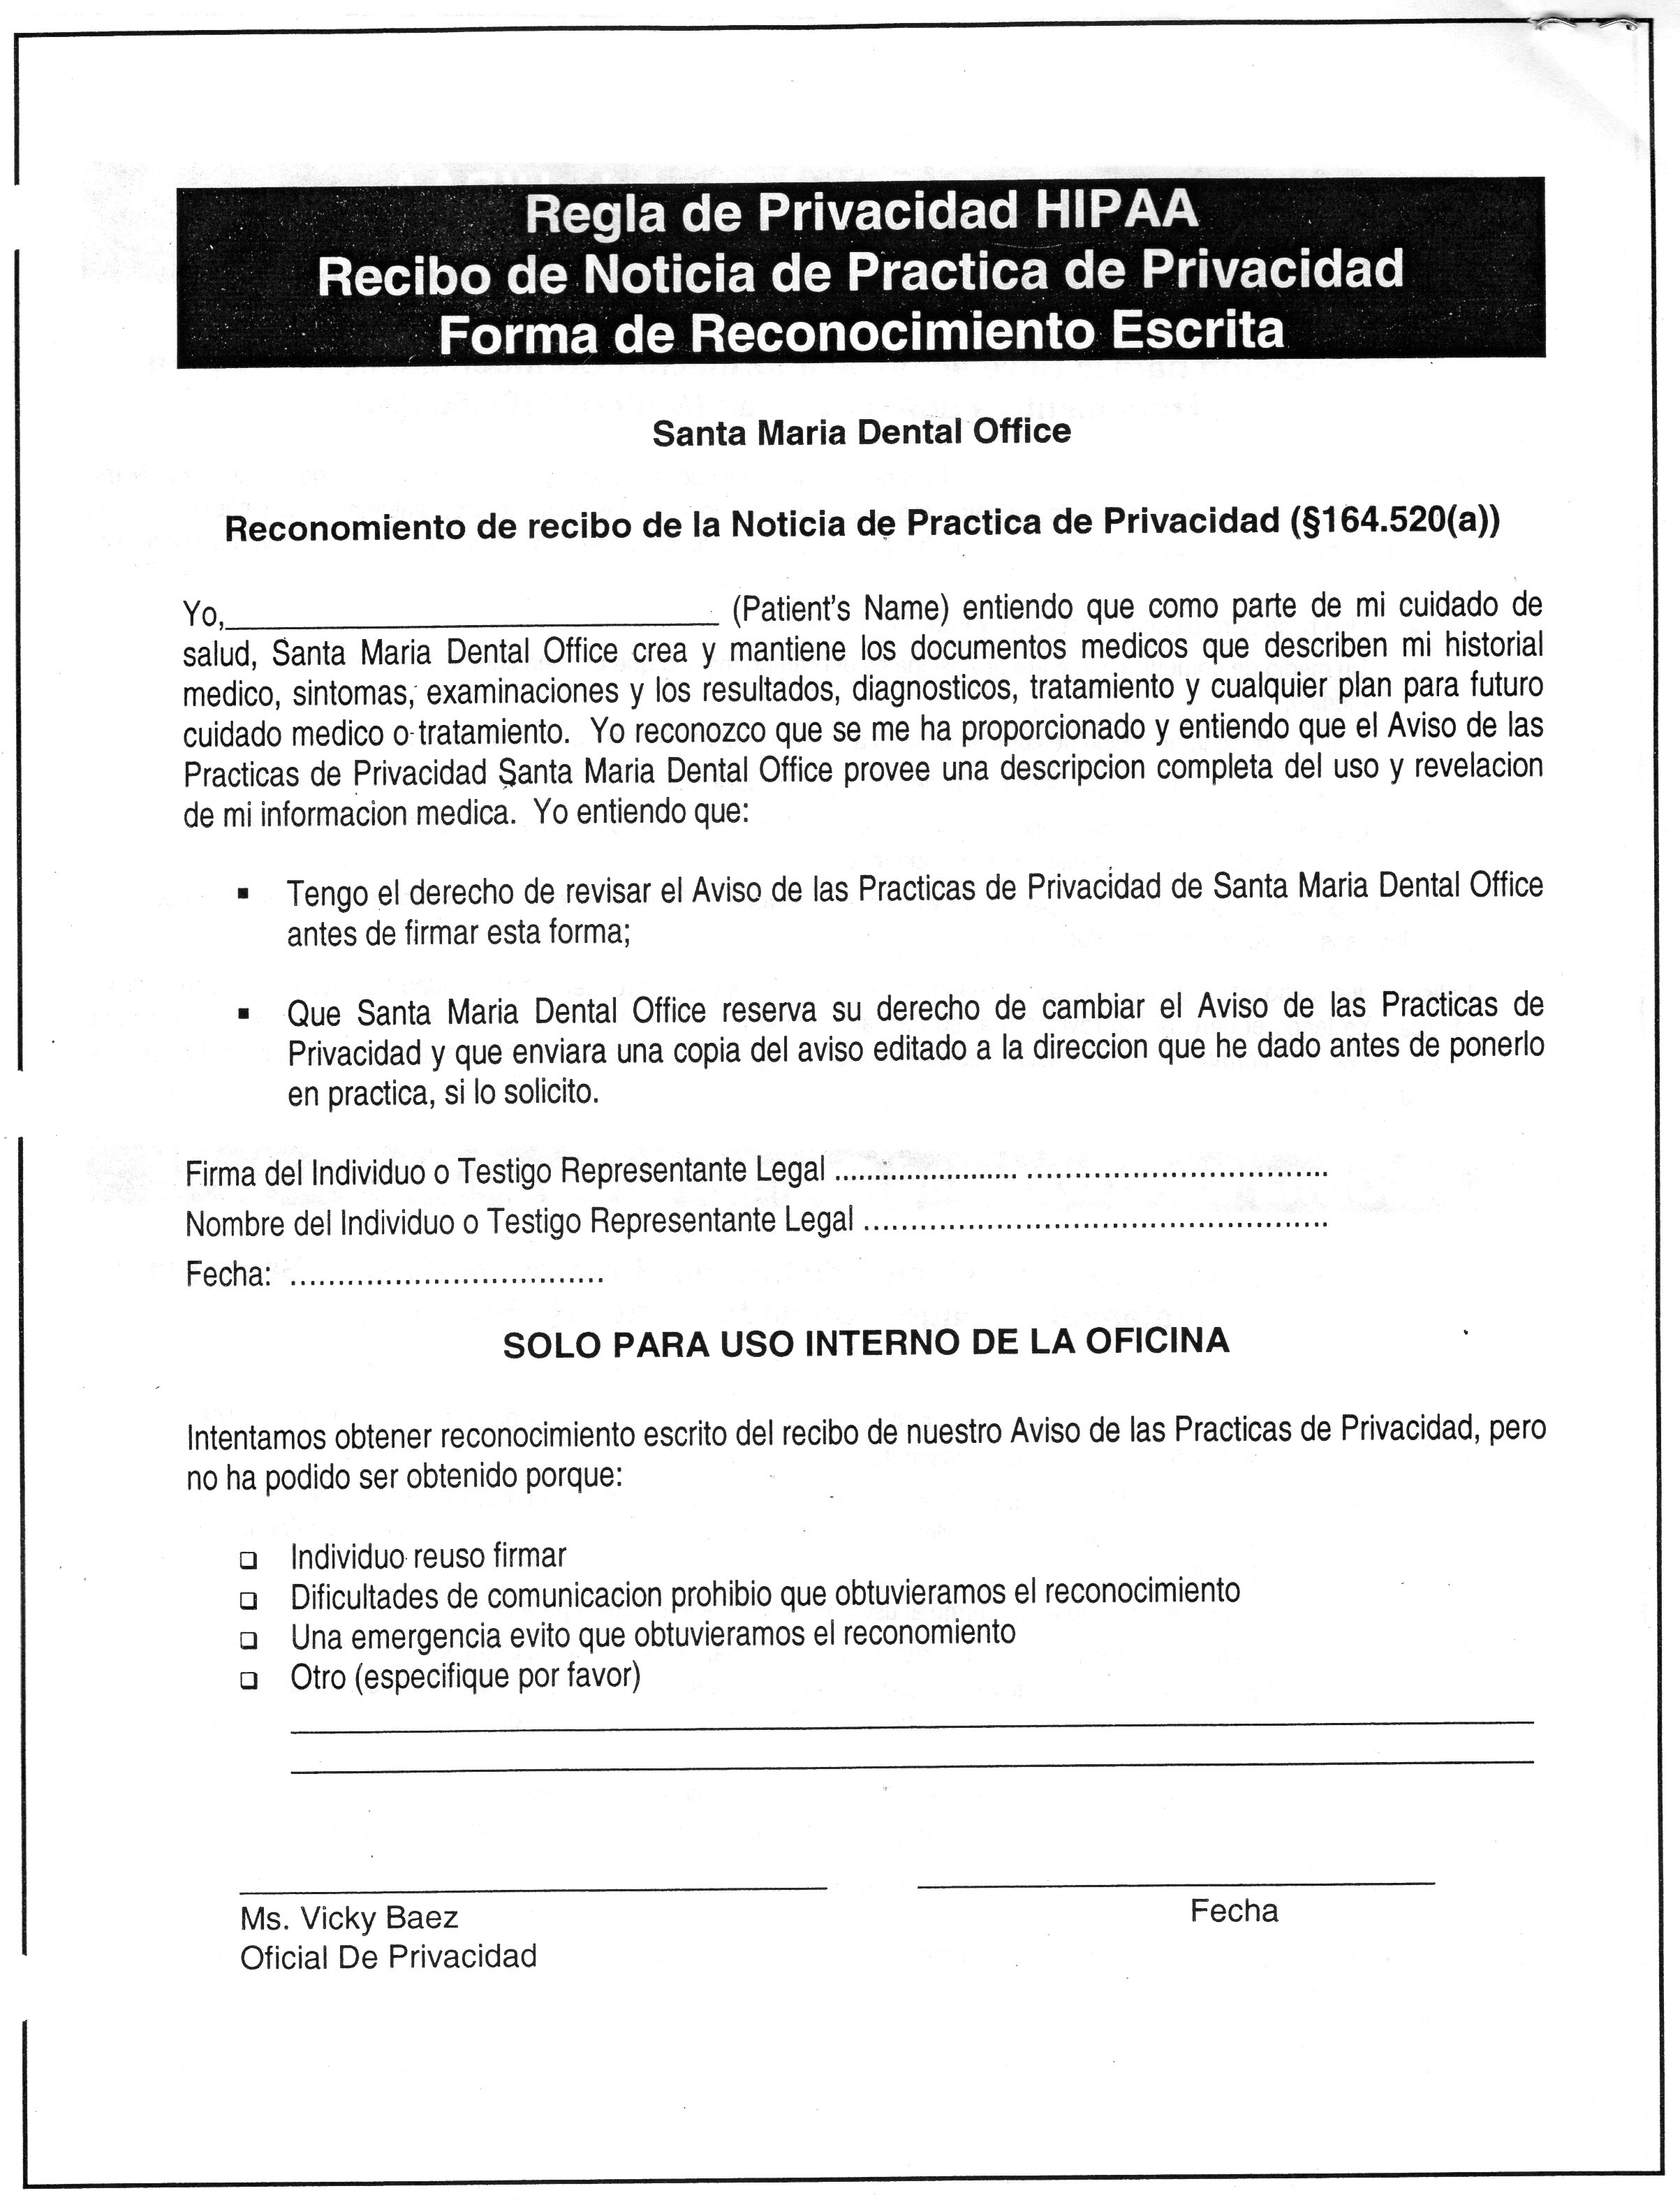 Santa Maria Dental Office on 2013 hipaa for dental offices, medical history forms for doctors offices, hipaa forms for dental offices, hipaa privacy forms for physicians offices, privacy statements for medical offices, hipaa sign in sheets medical, hipaa medical records form,